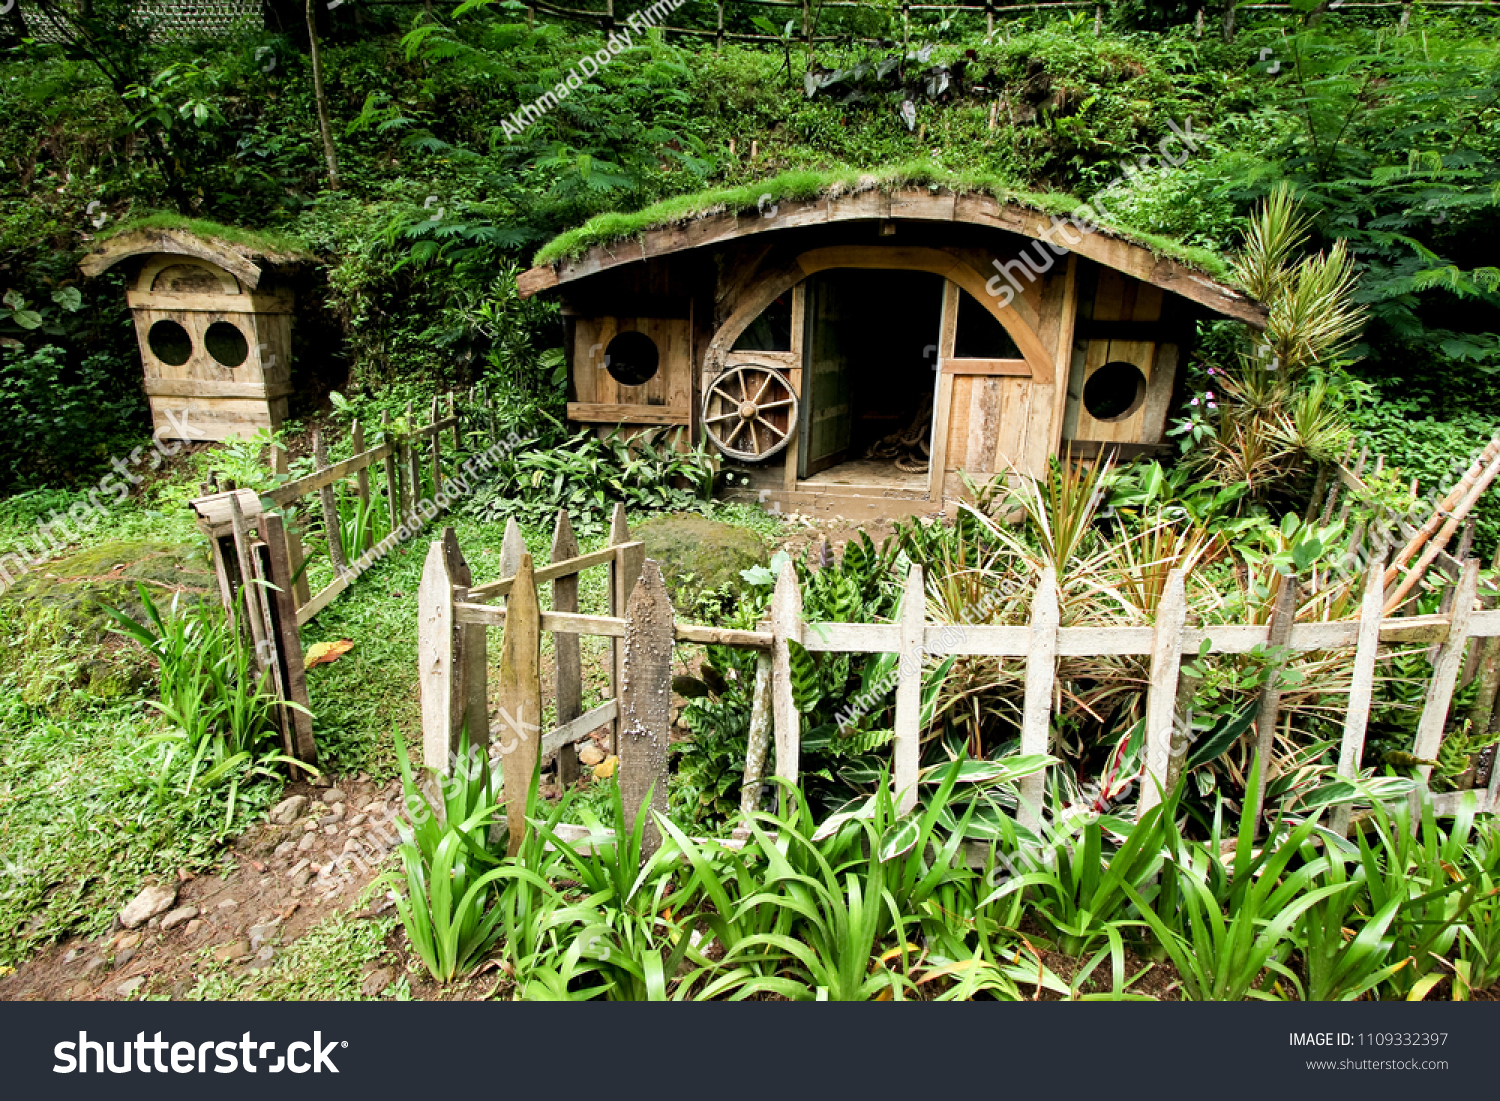 Wooden Hobbit House